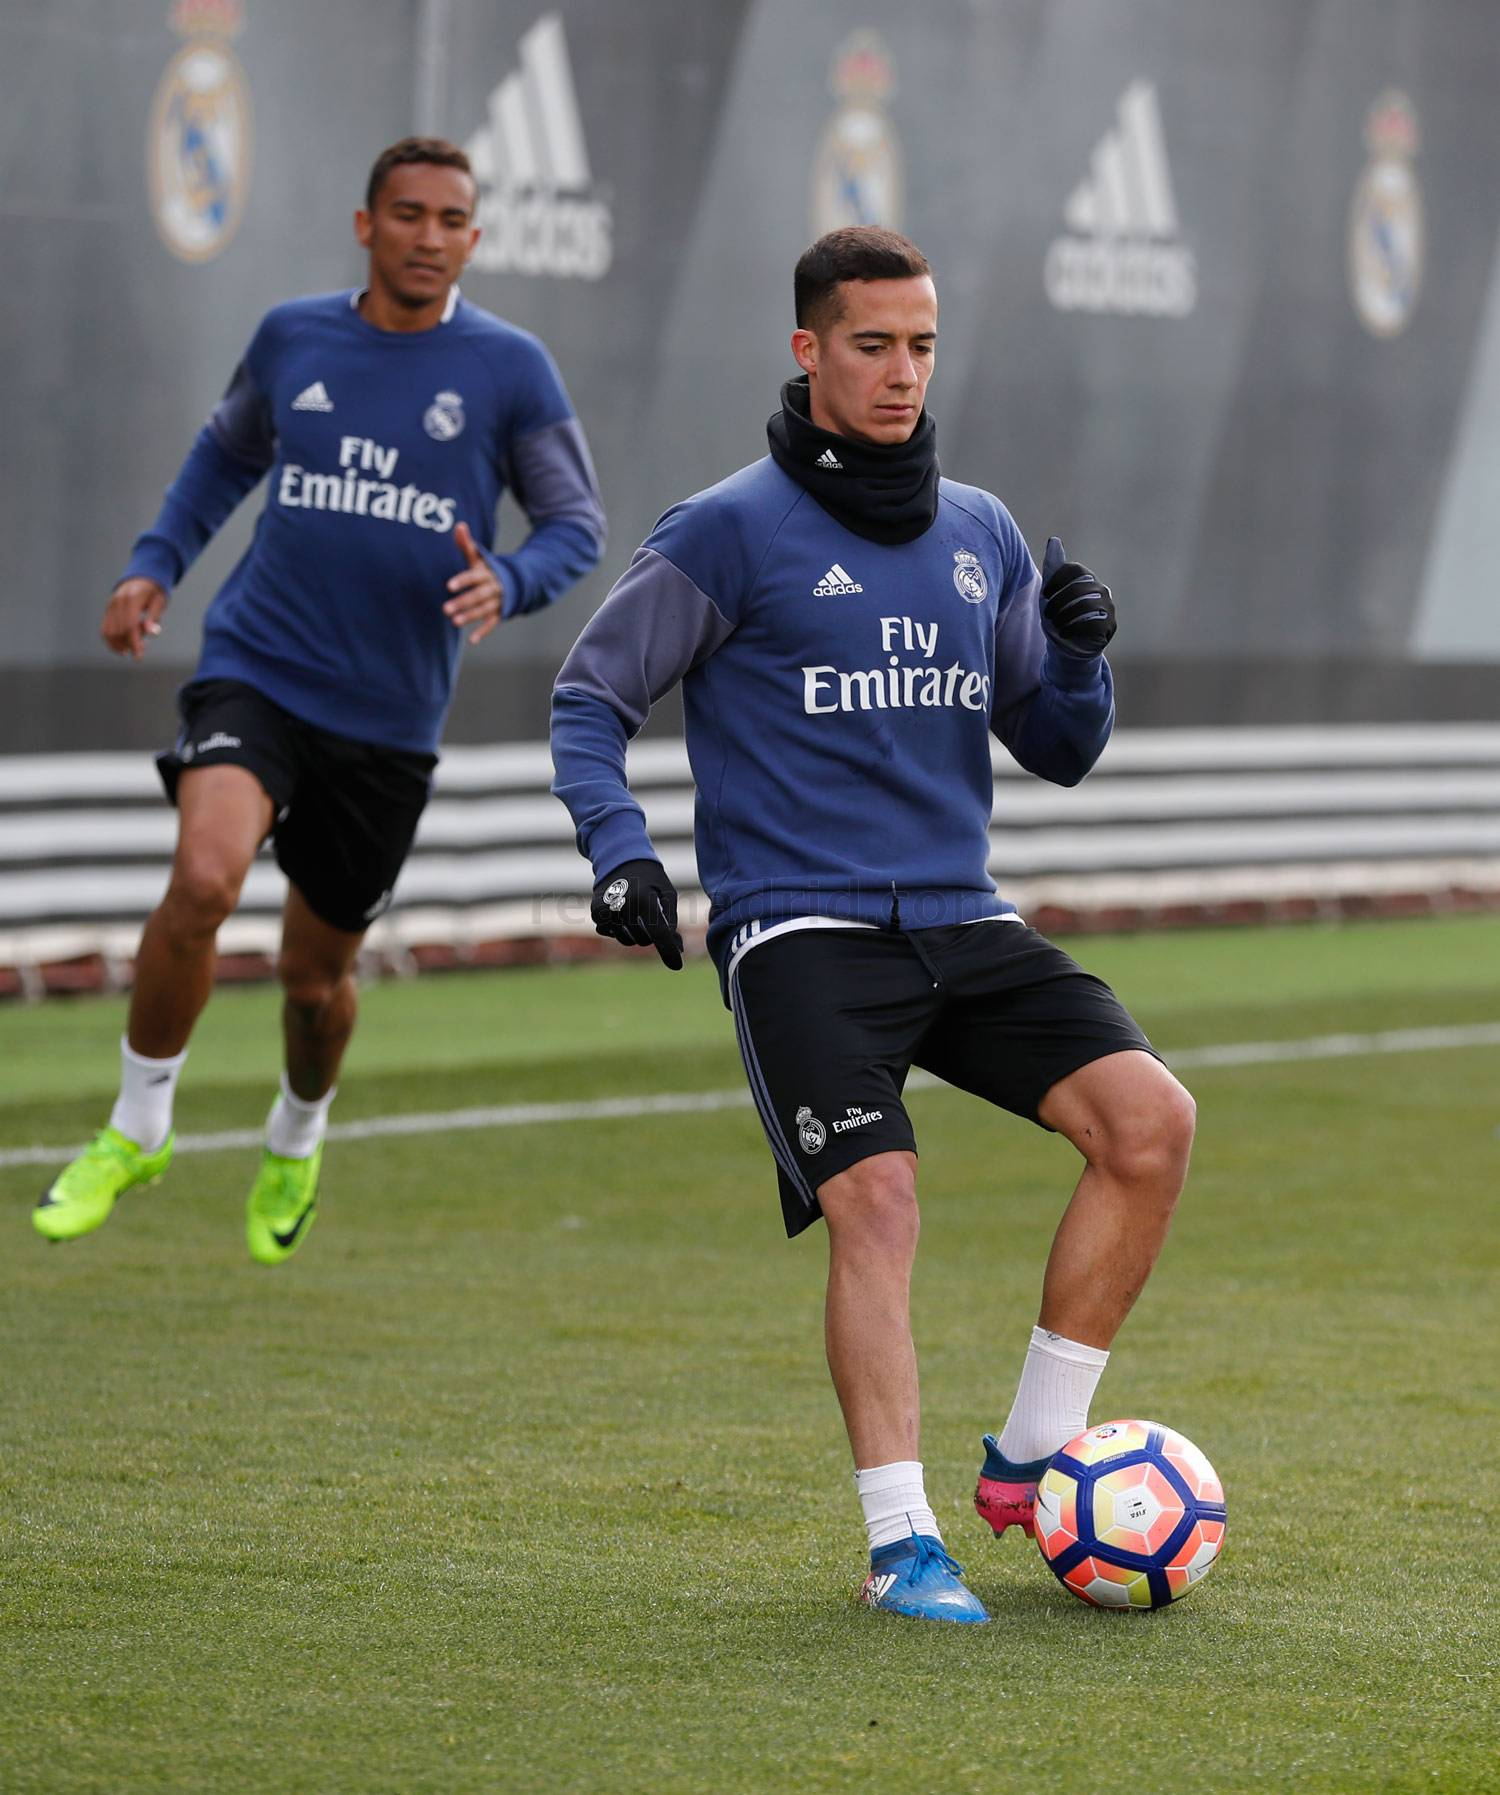 Real Madrid - Entrenamiento del Real Madrid - 24-03-2017